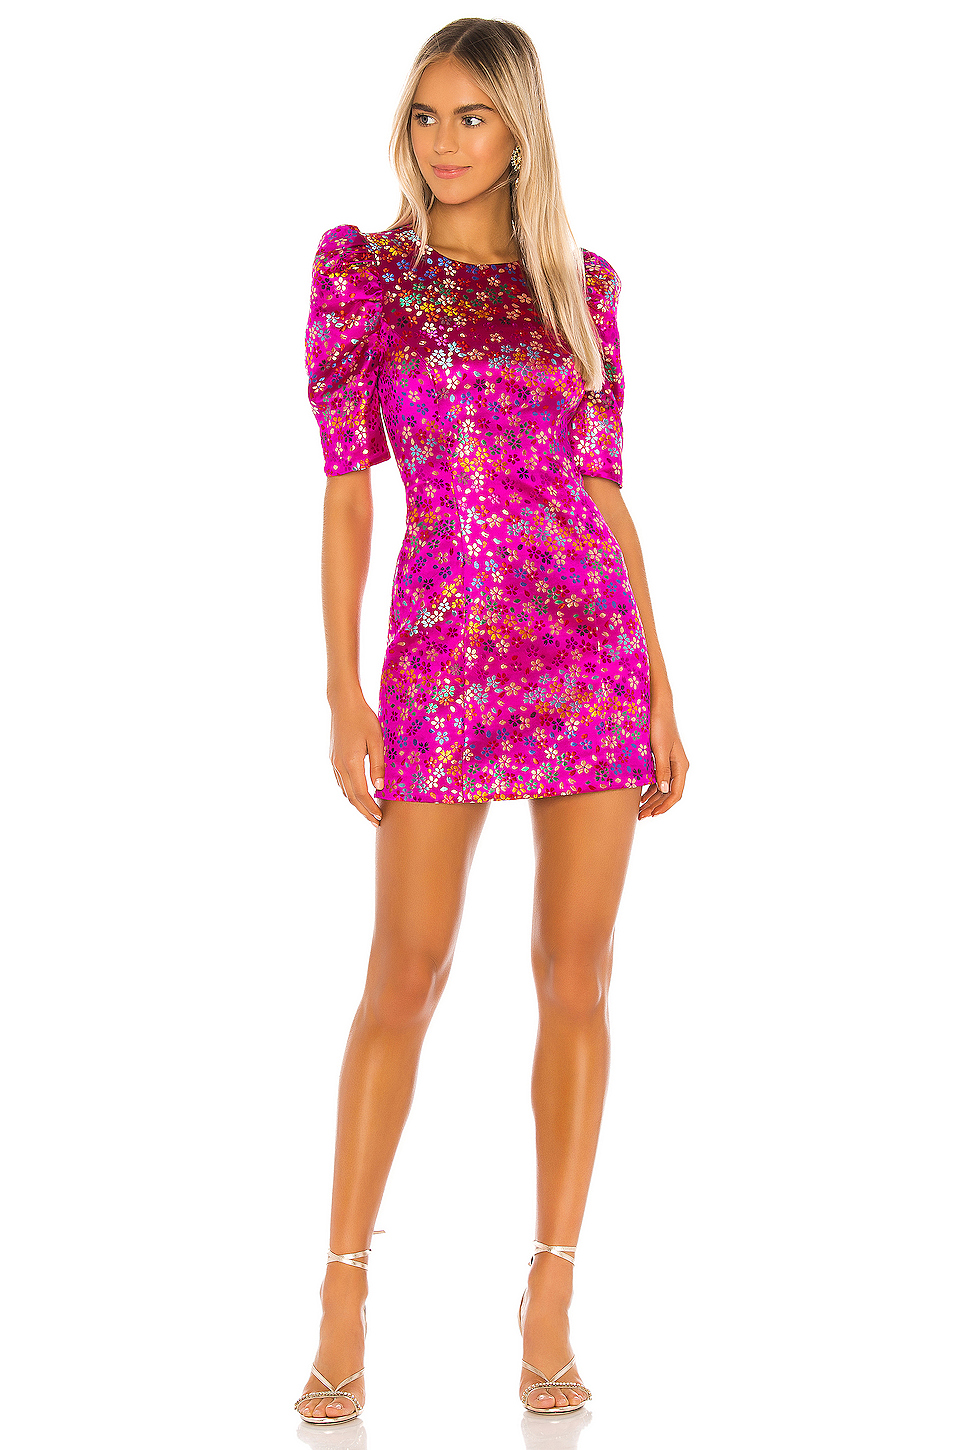 Camila Coelho Julinha Mini Dress in Multi Floral